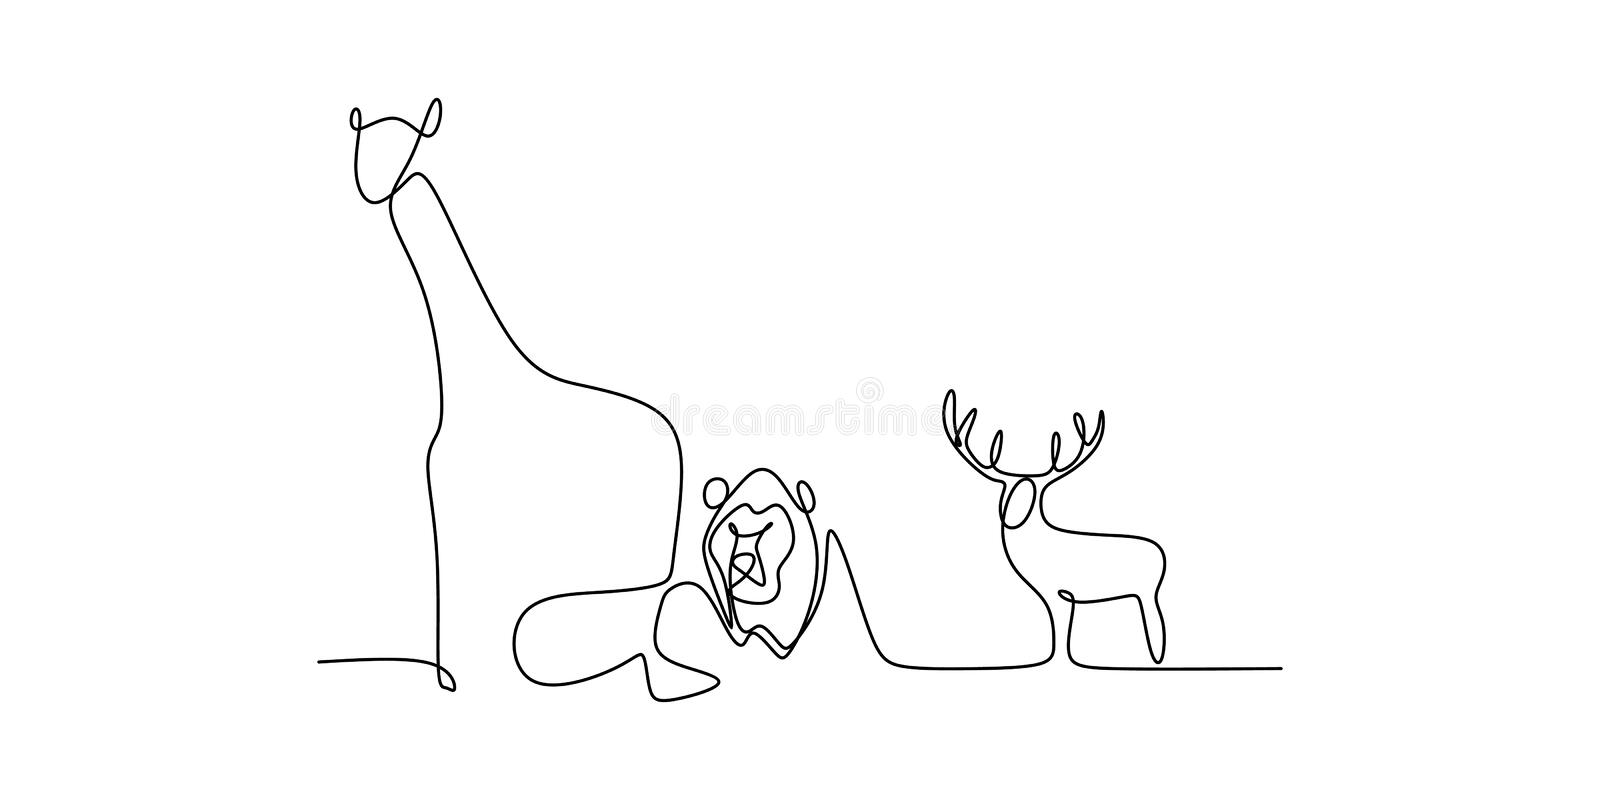 Animal zoo continuous line drawing of elephant, lion, deer, bird, and giraffe vector illustration royalty free illustration